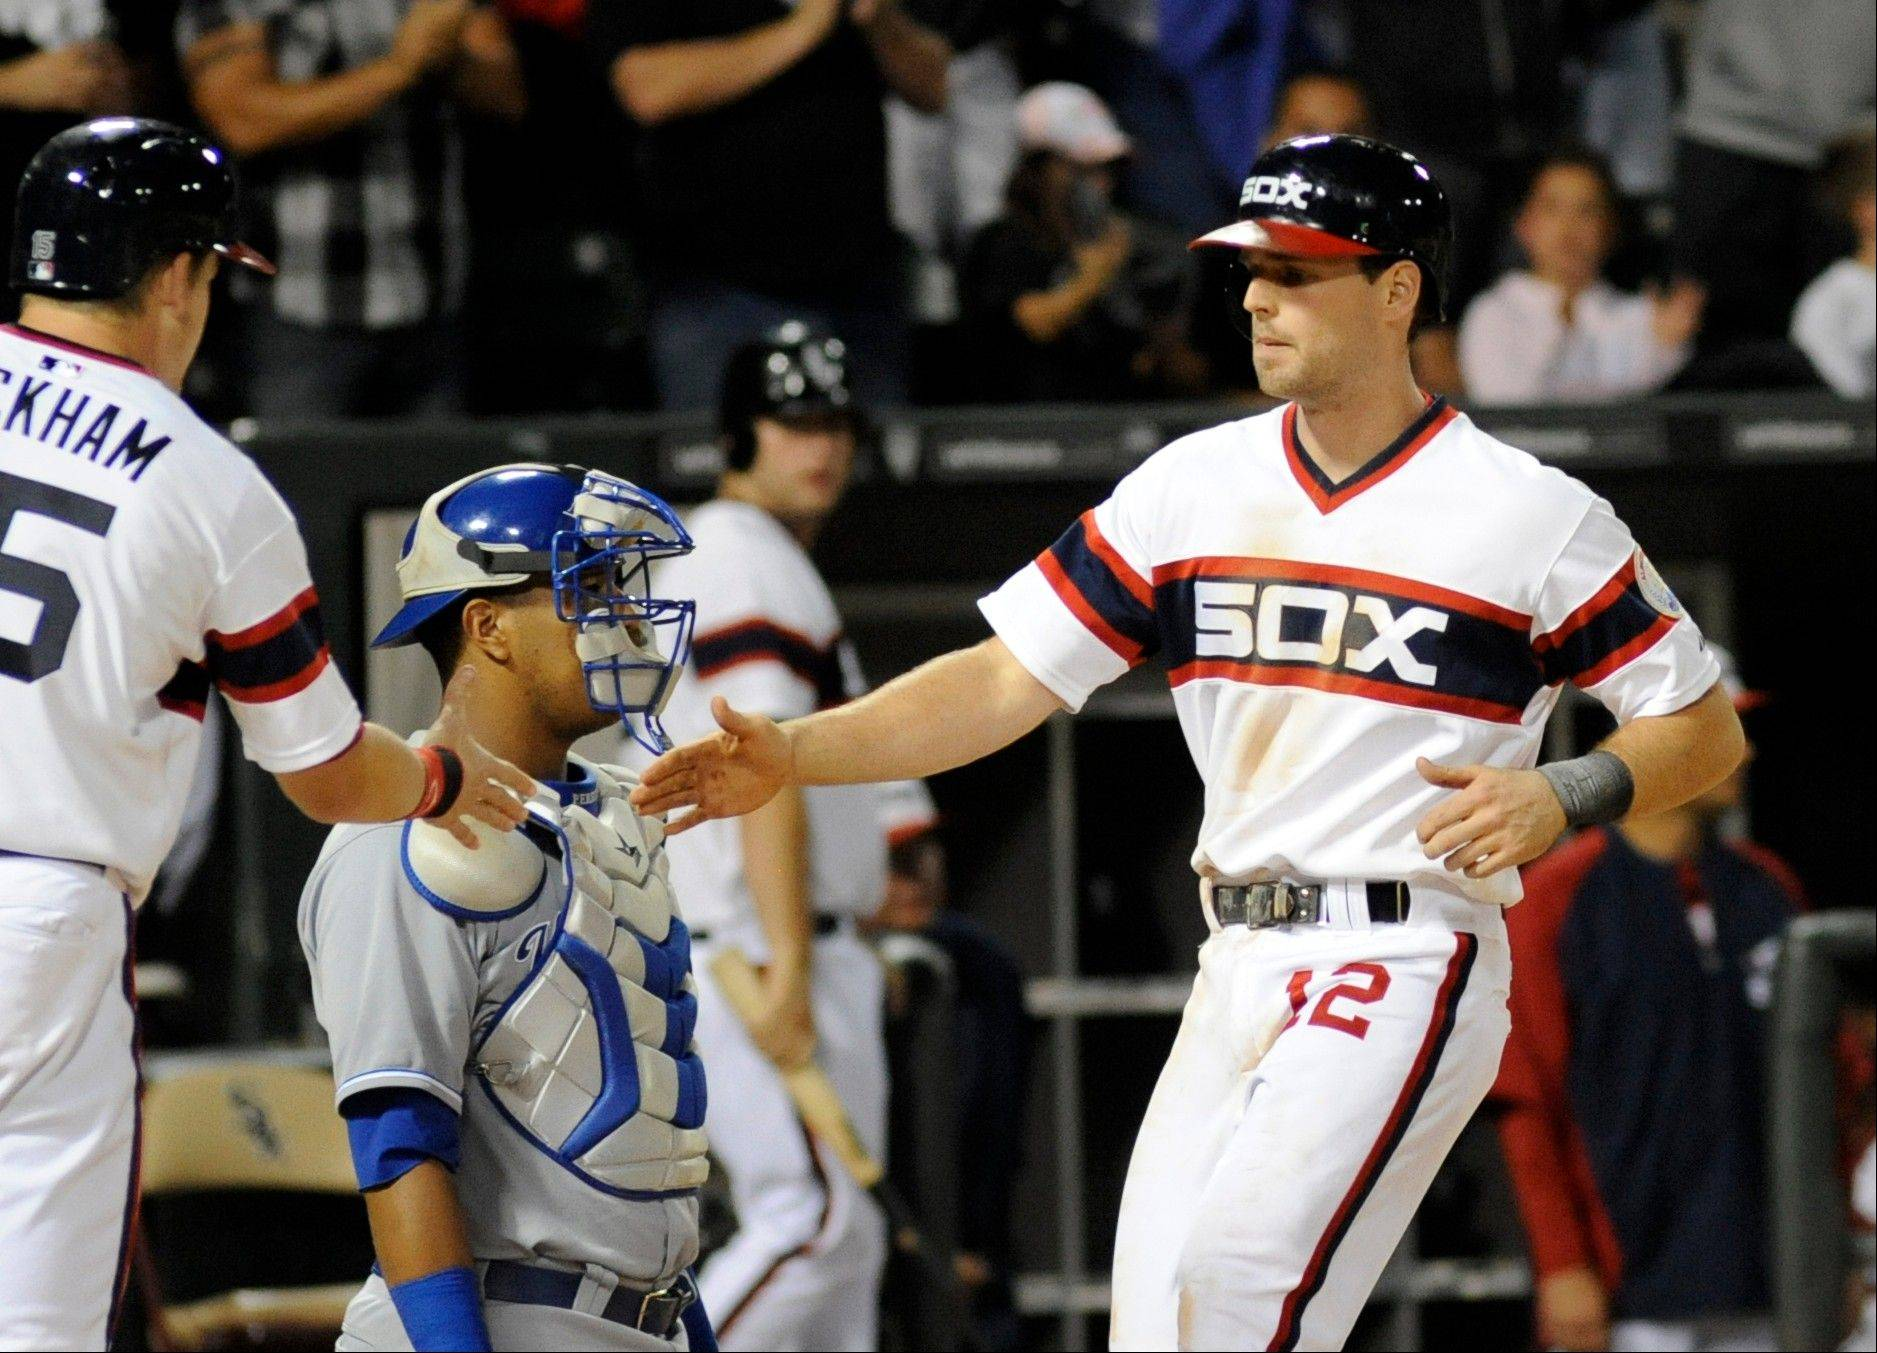 Chicago White Sox�s Connor Gillaspie, right, is congratulated by Gordon Beckham after hitting a home run in the seventh inning of a baseball game against the Kansas City Royals Saturday in Chicago.